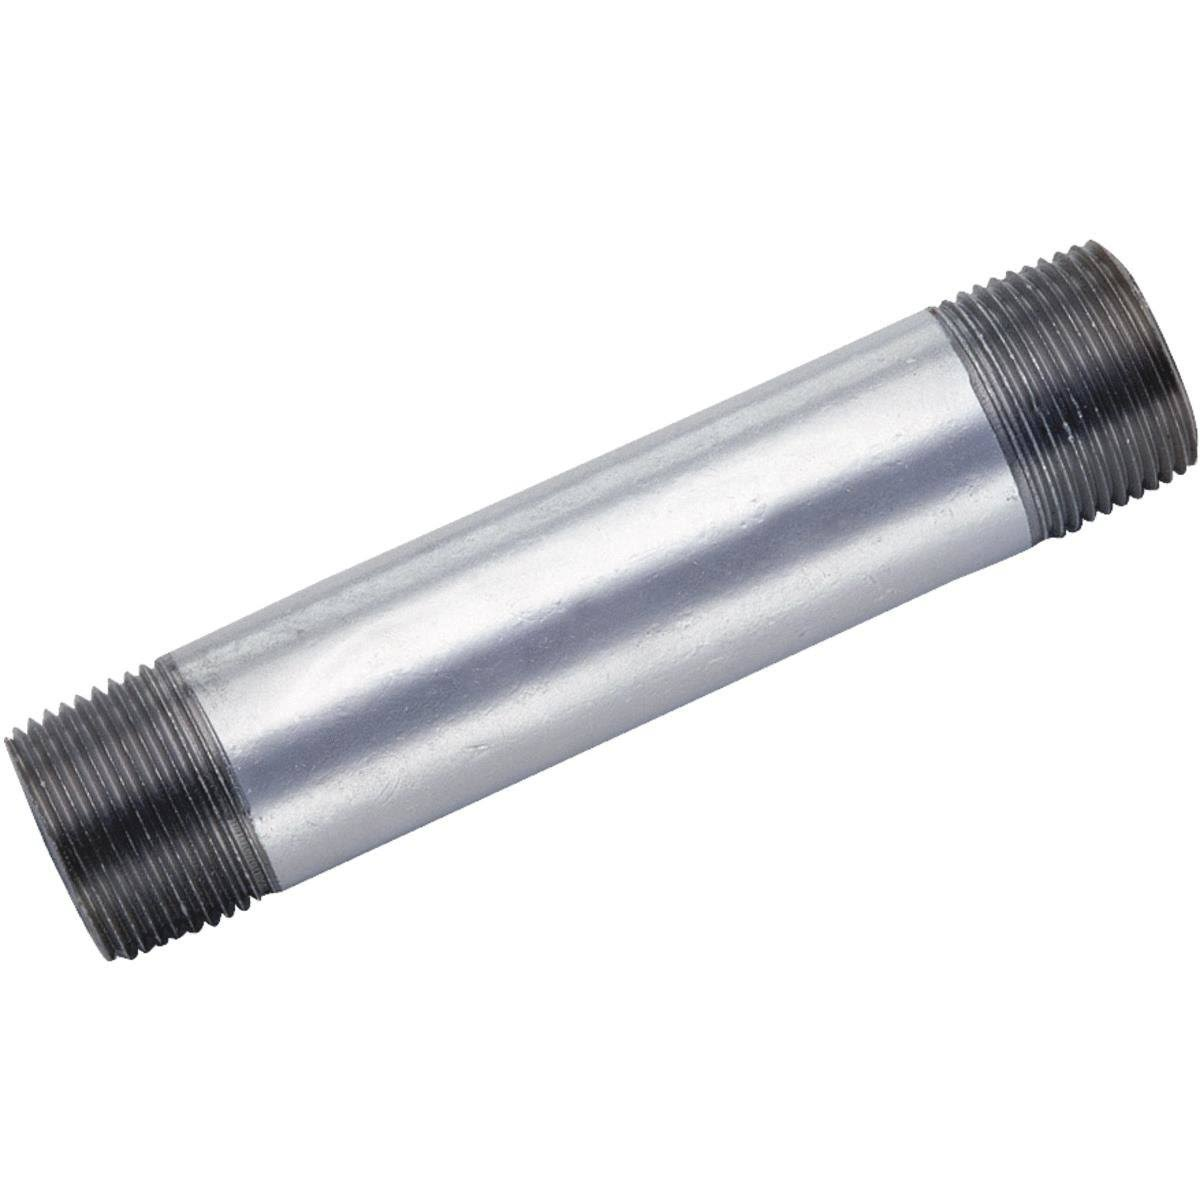 Anvil Steel Pipe Fitting - Galvanized Finish, 1-3/8""